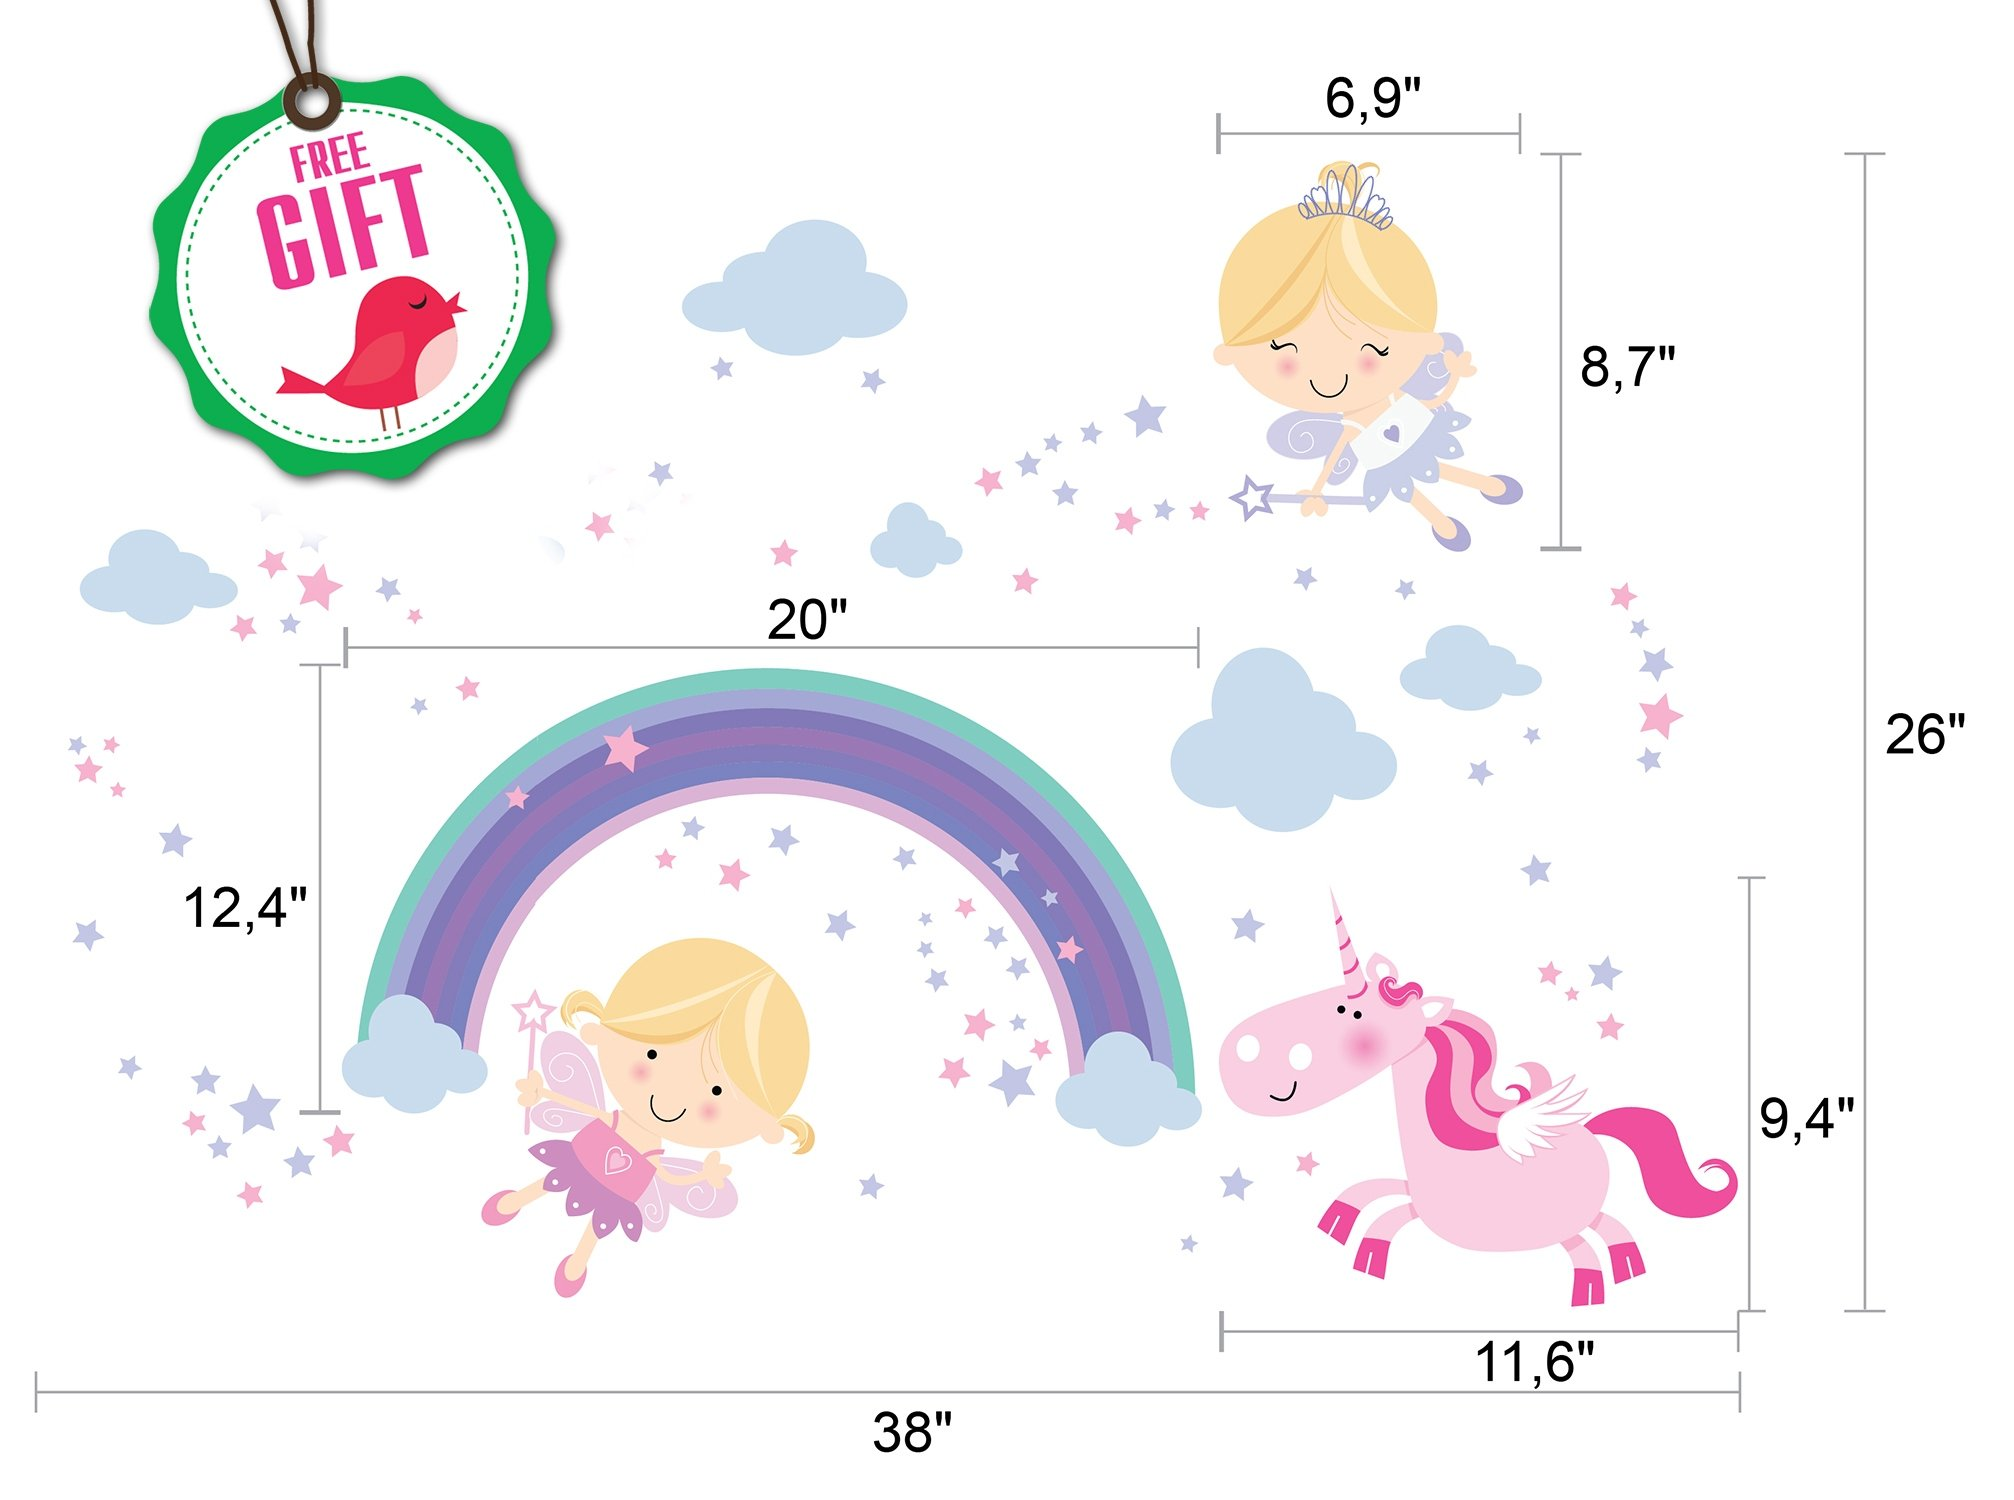 Fairy Unicorn Baby Girl Room Décor Stickers - Princess Playroom Wall Decals with Free Gift! 4